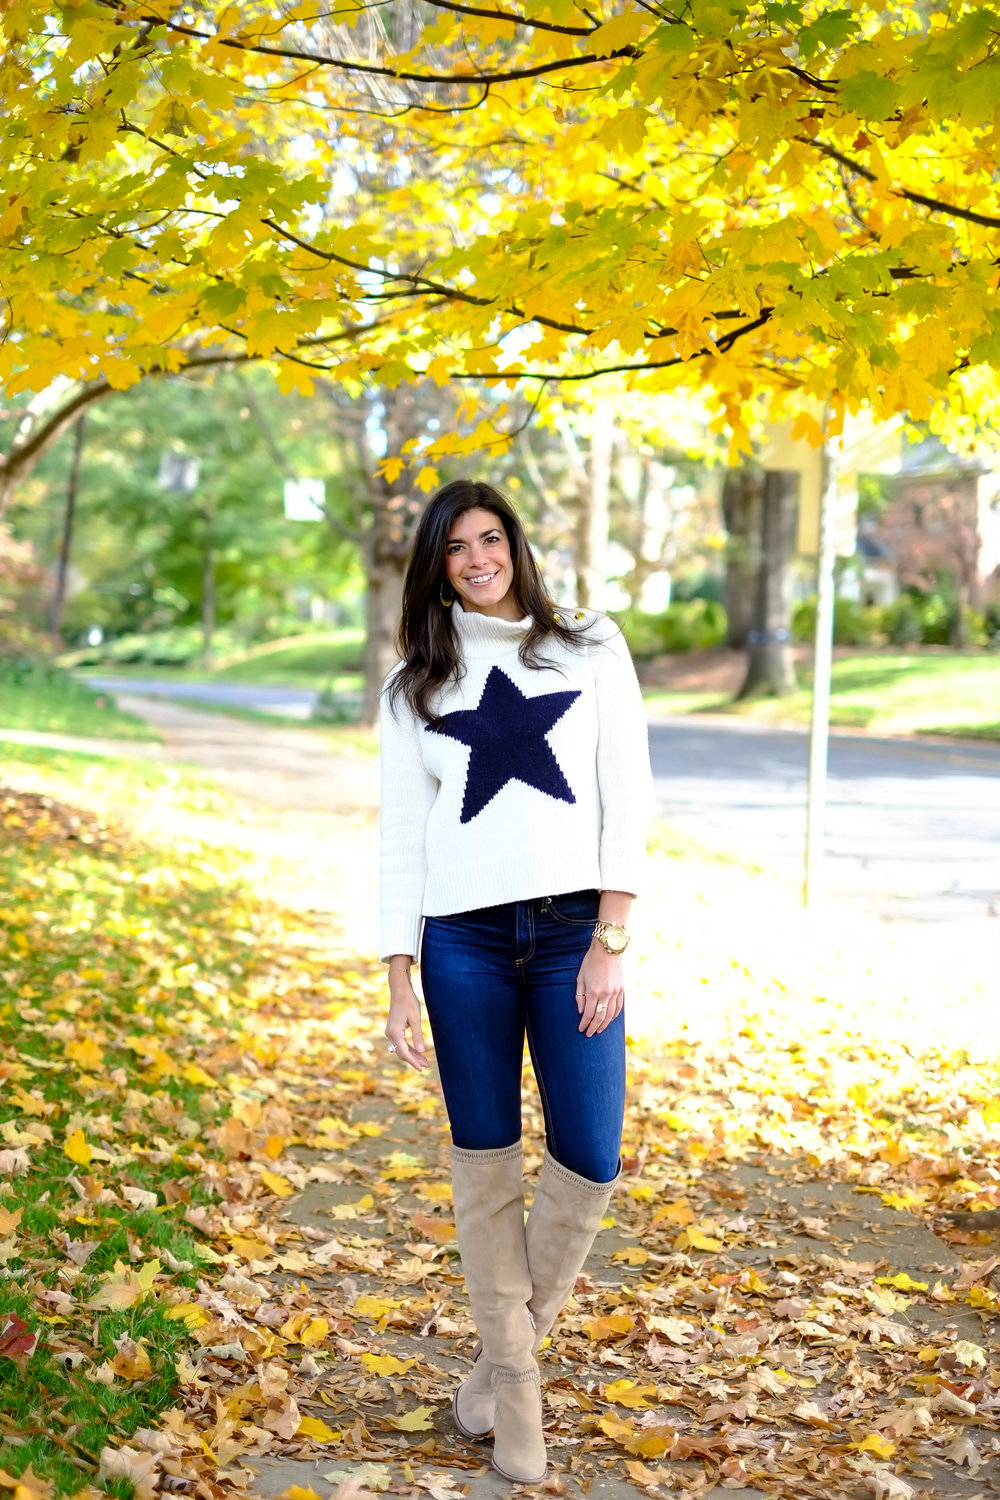 jeans-over-the-knee-boots-sweater-fall-style-inspiration-lauren-schwaiger.jpg